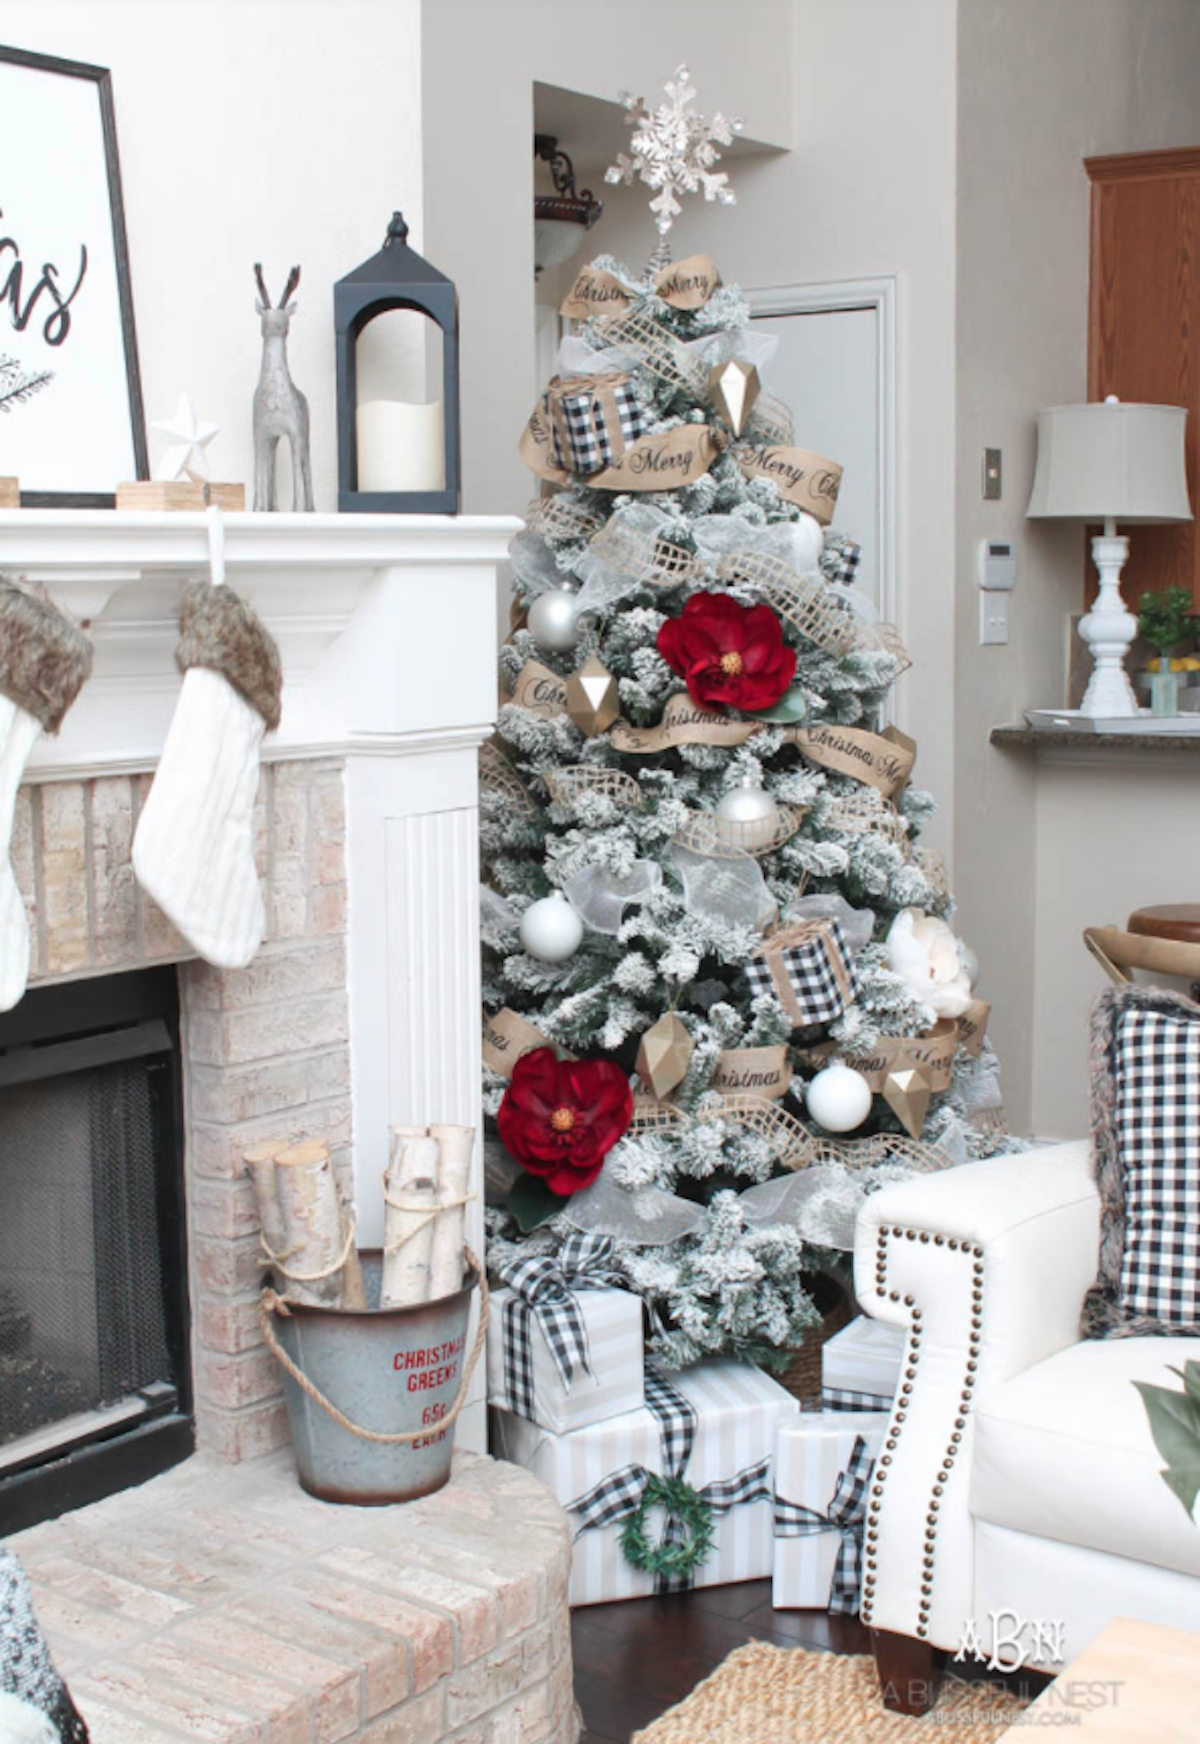 Christmas magic comes in many colors, and a few of our favorite bloggers shared their holiday homes to prove it! From bright red and green to neutral taupe and gold, we've got Christmas decor that suits your style.